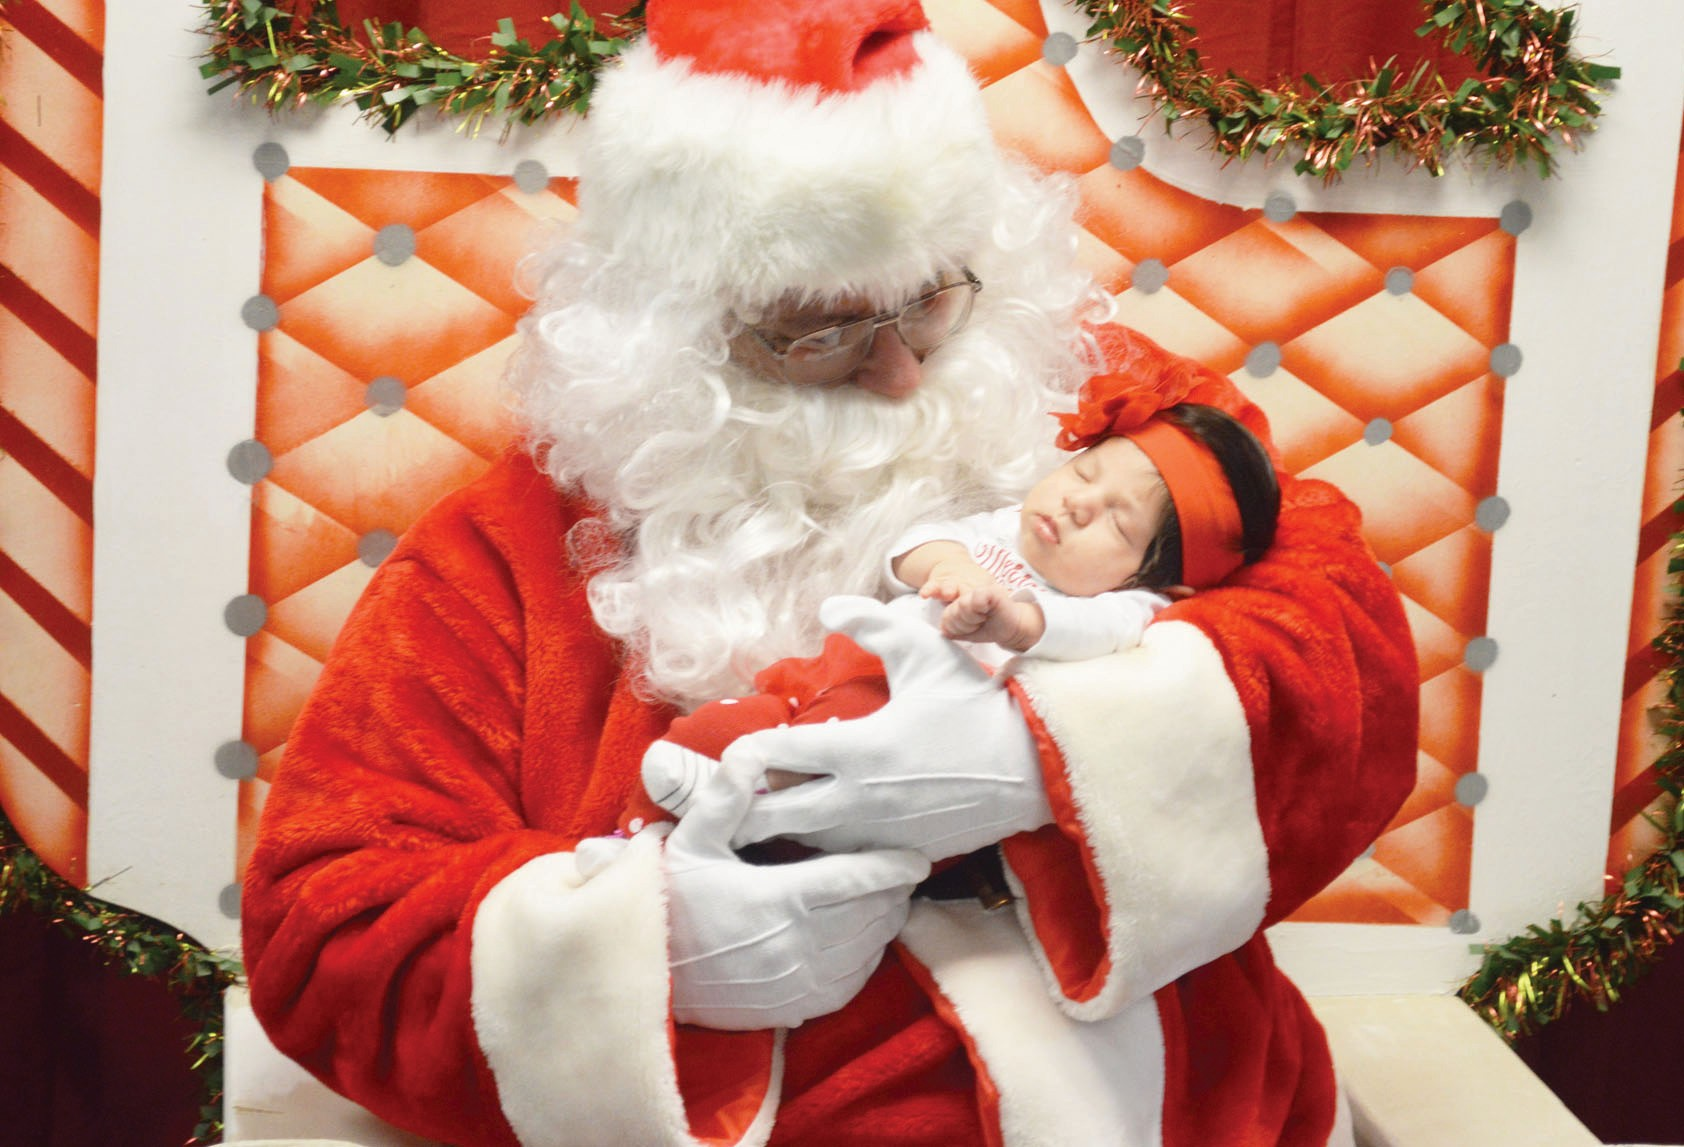 JOE DAVID COR DOVA | Pleasanton Express Little Addyson Martinez has her first visit with Santa Claus. The man in the red suit visited the Jourdanton Library and Civic Center on Monday, December 7 to see all the good boys and girls.